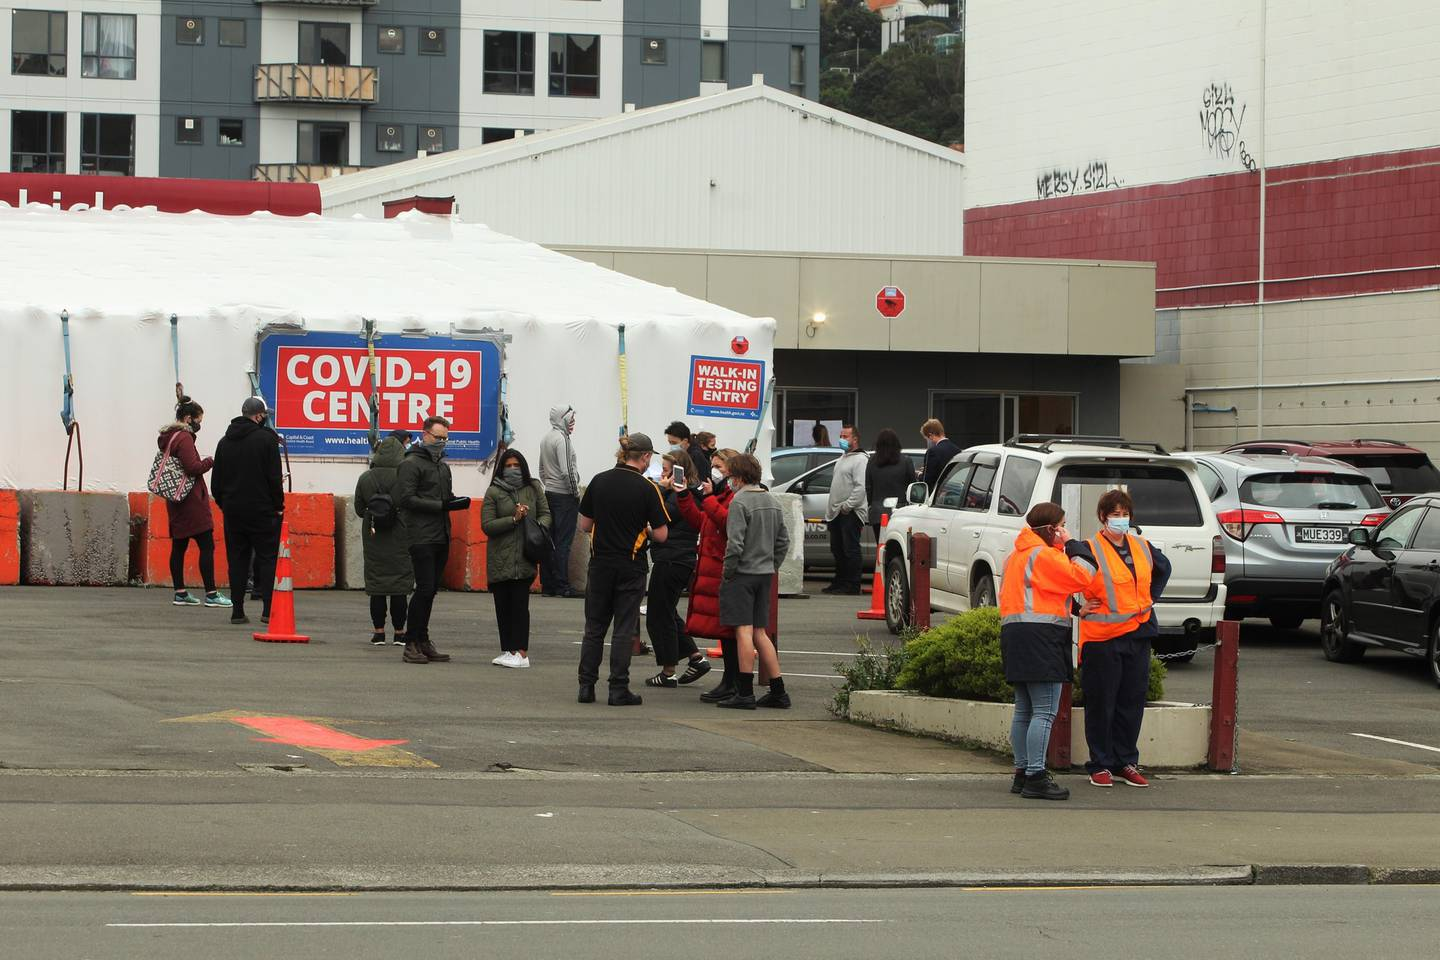 People wait outside a Covid-19 testing site at Taranaki St in Wellington today. Photo: NZ Herald